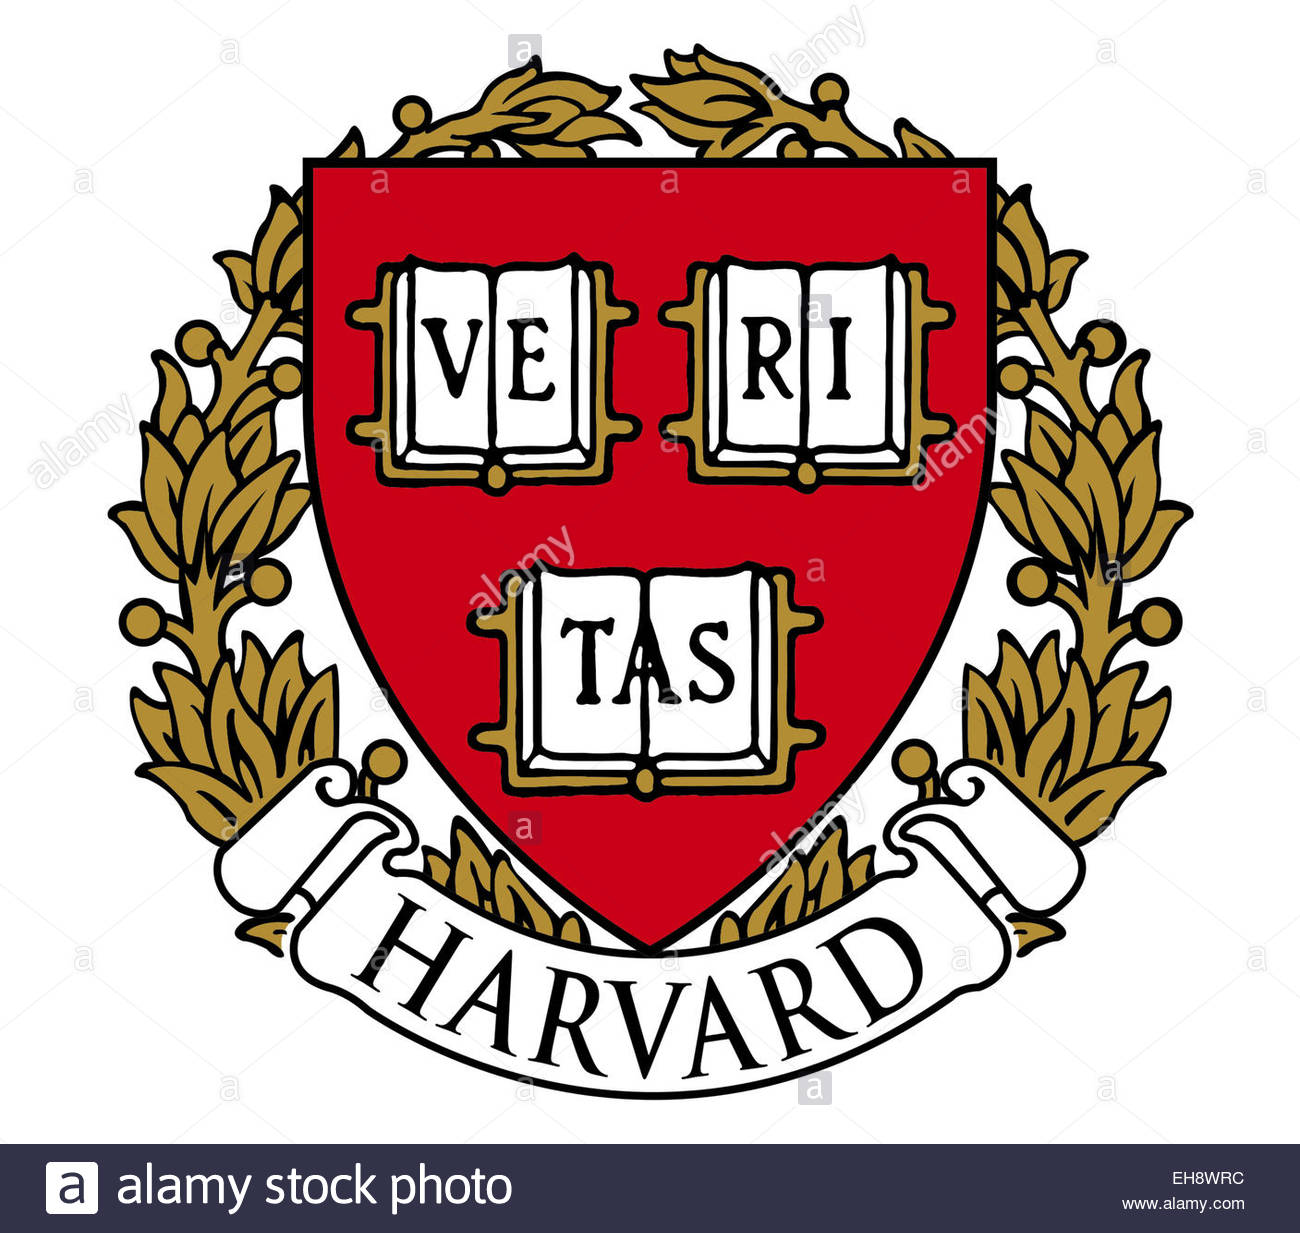 Harvard University logo icon symbol - Stock Image